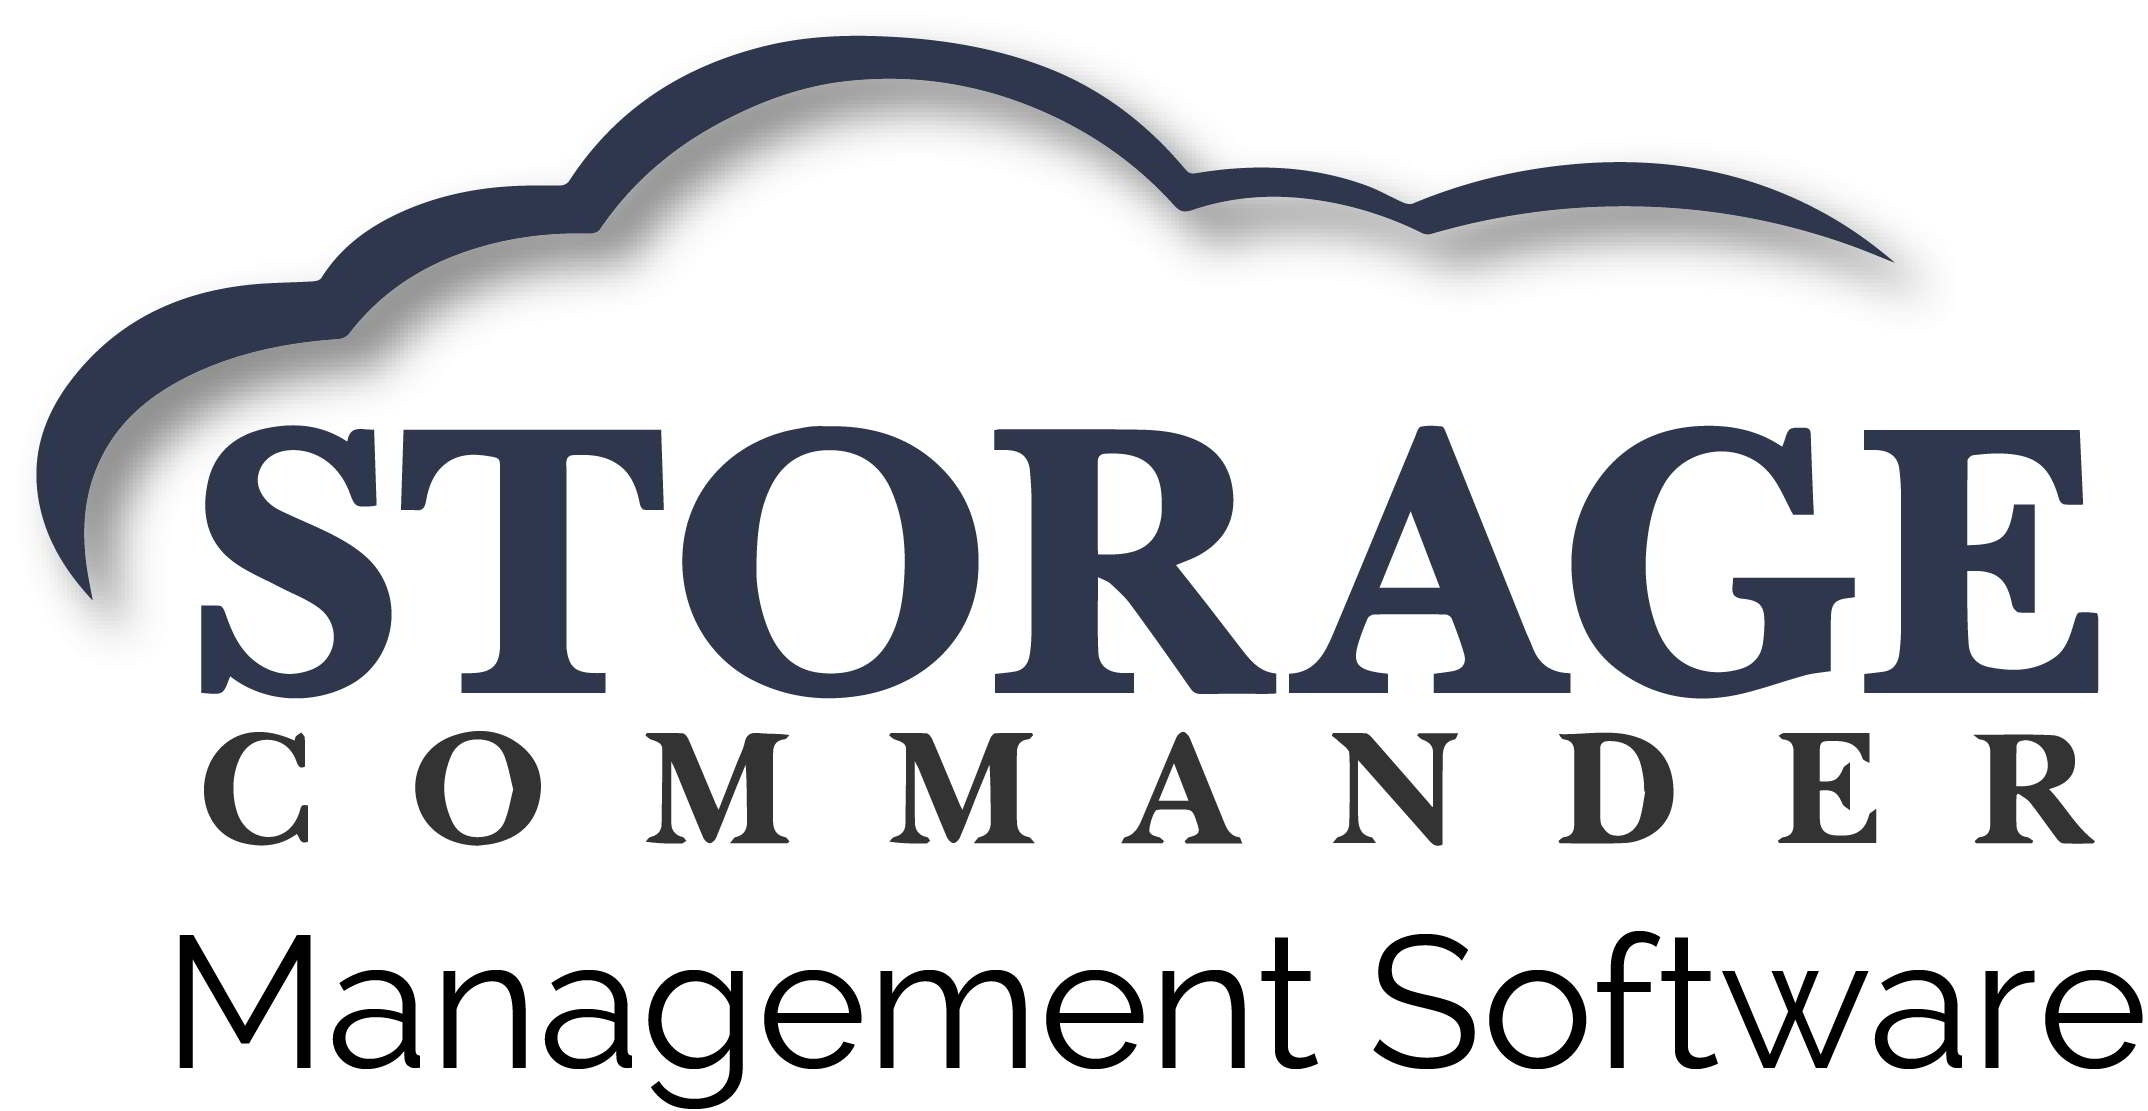 Storage Commander logo